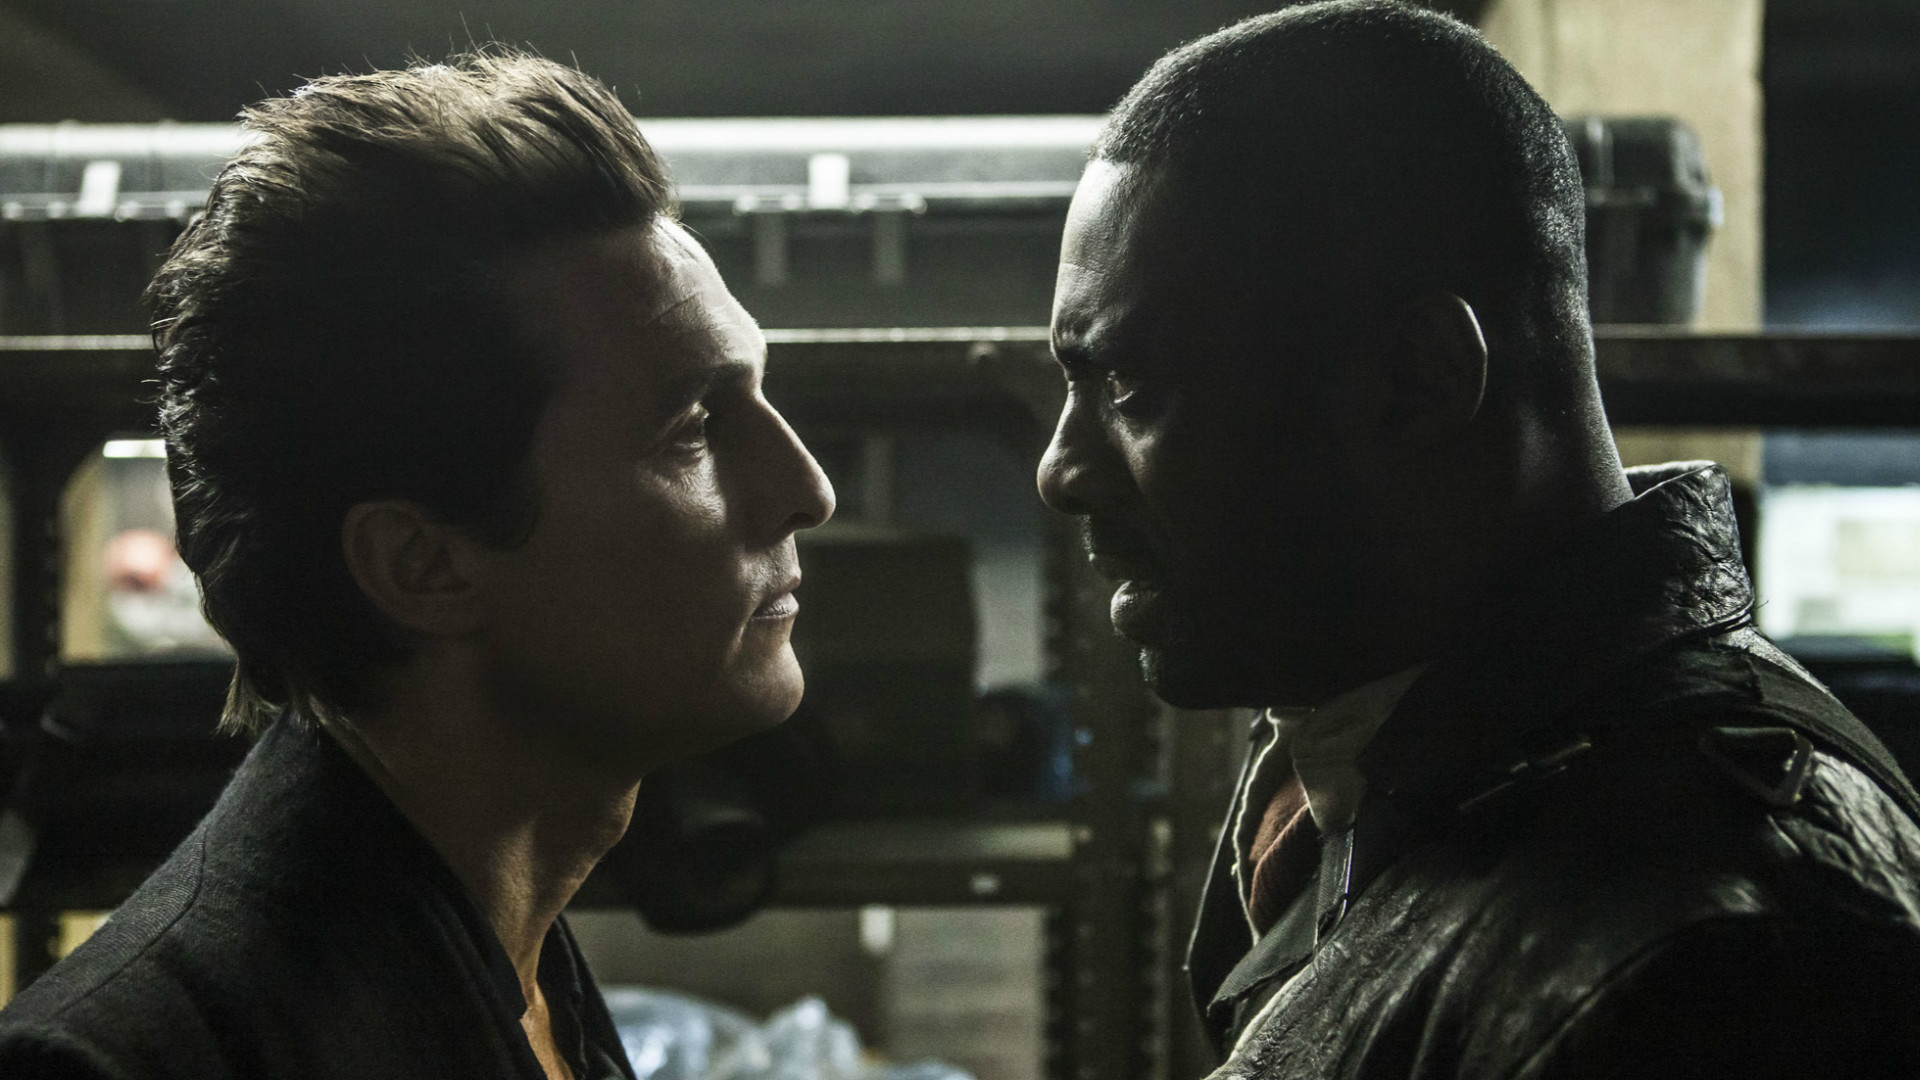 It's Matthew McConaughey vs Idris Elba in The Dark Tower